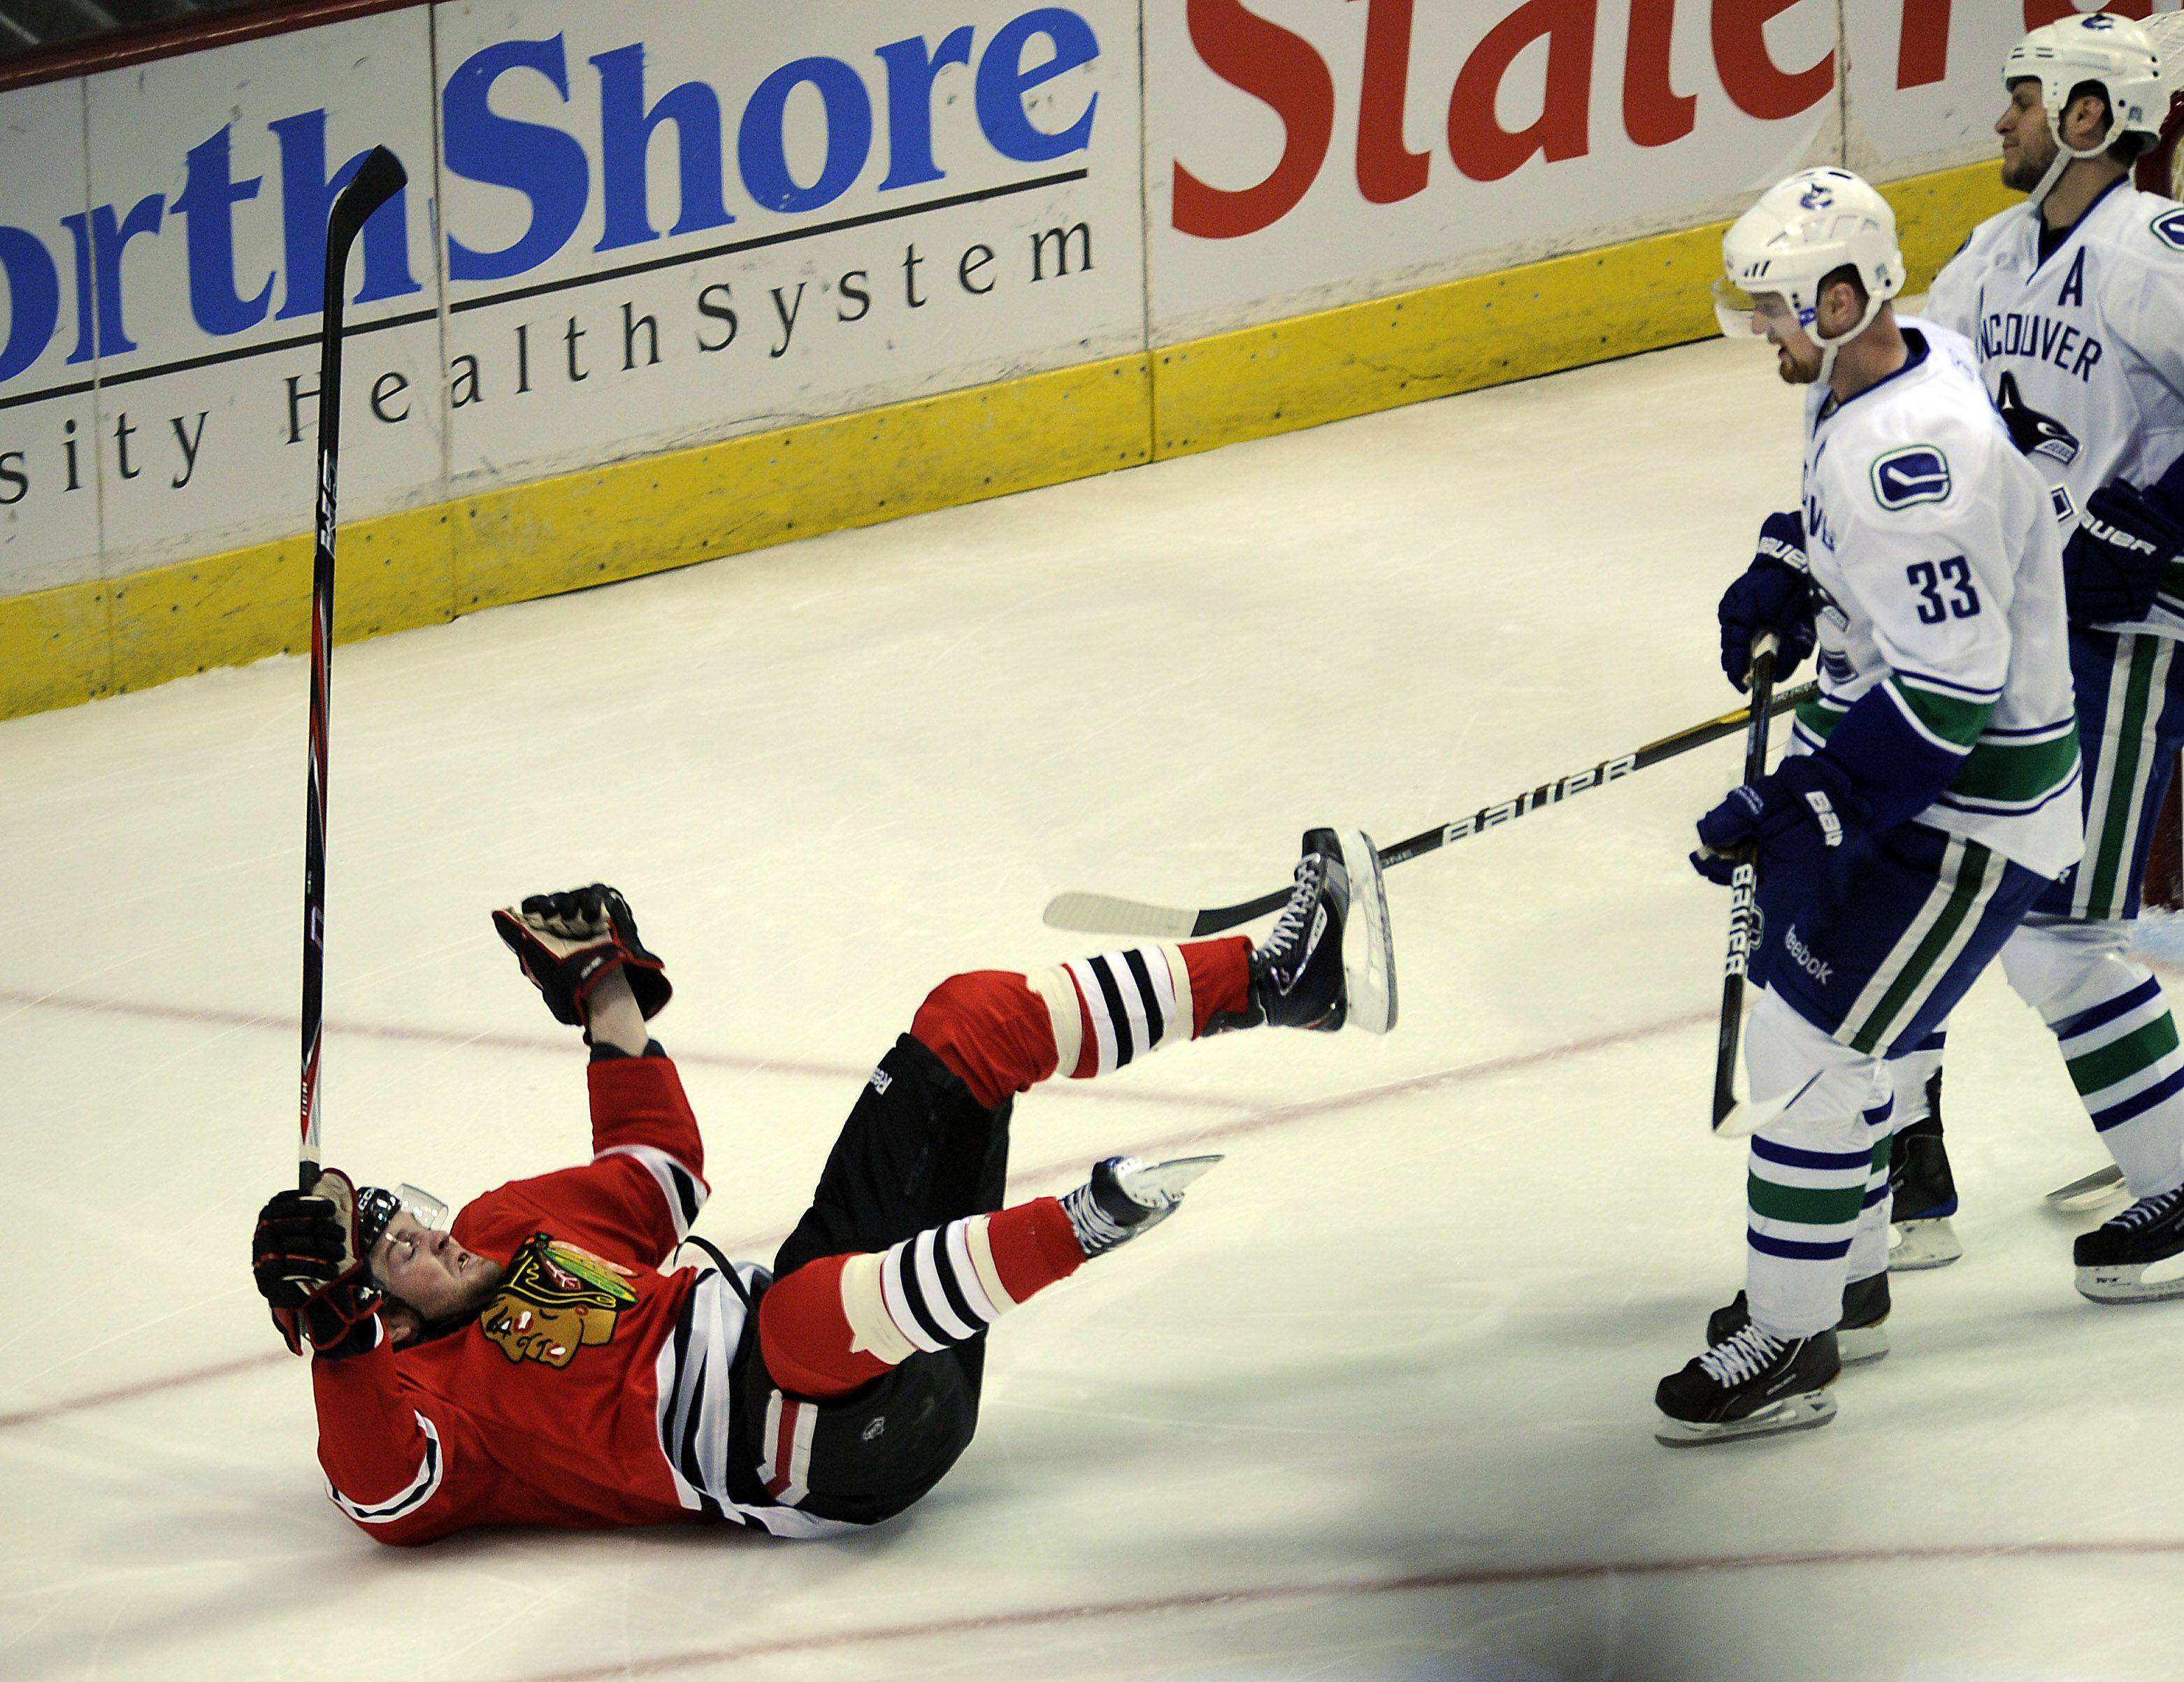 Bryan Bickell falls on the ice after scoring in the first period.